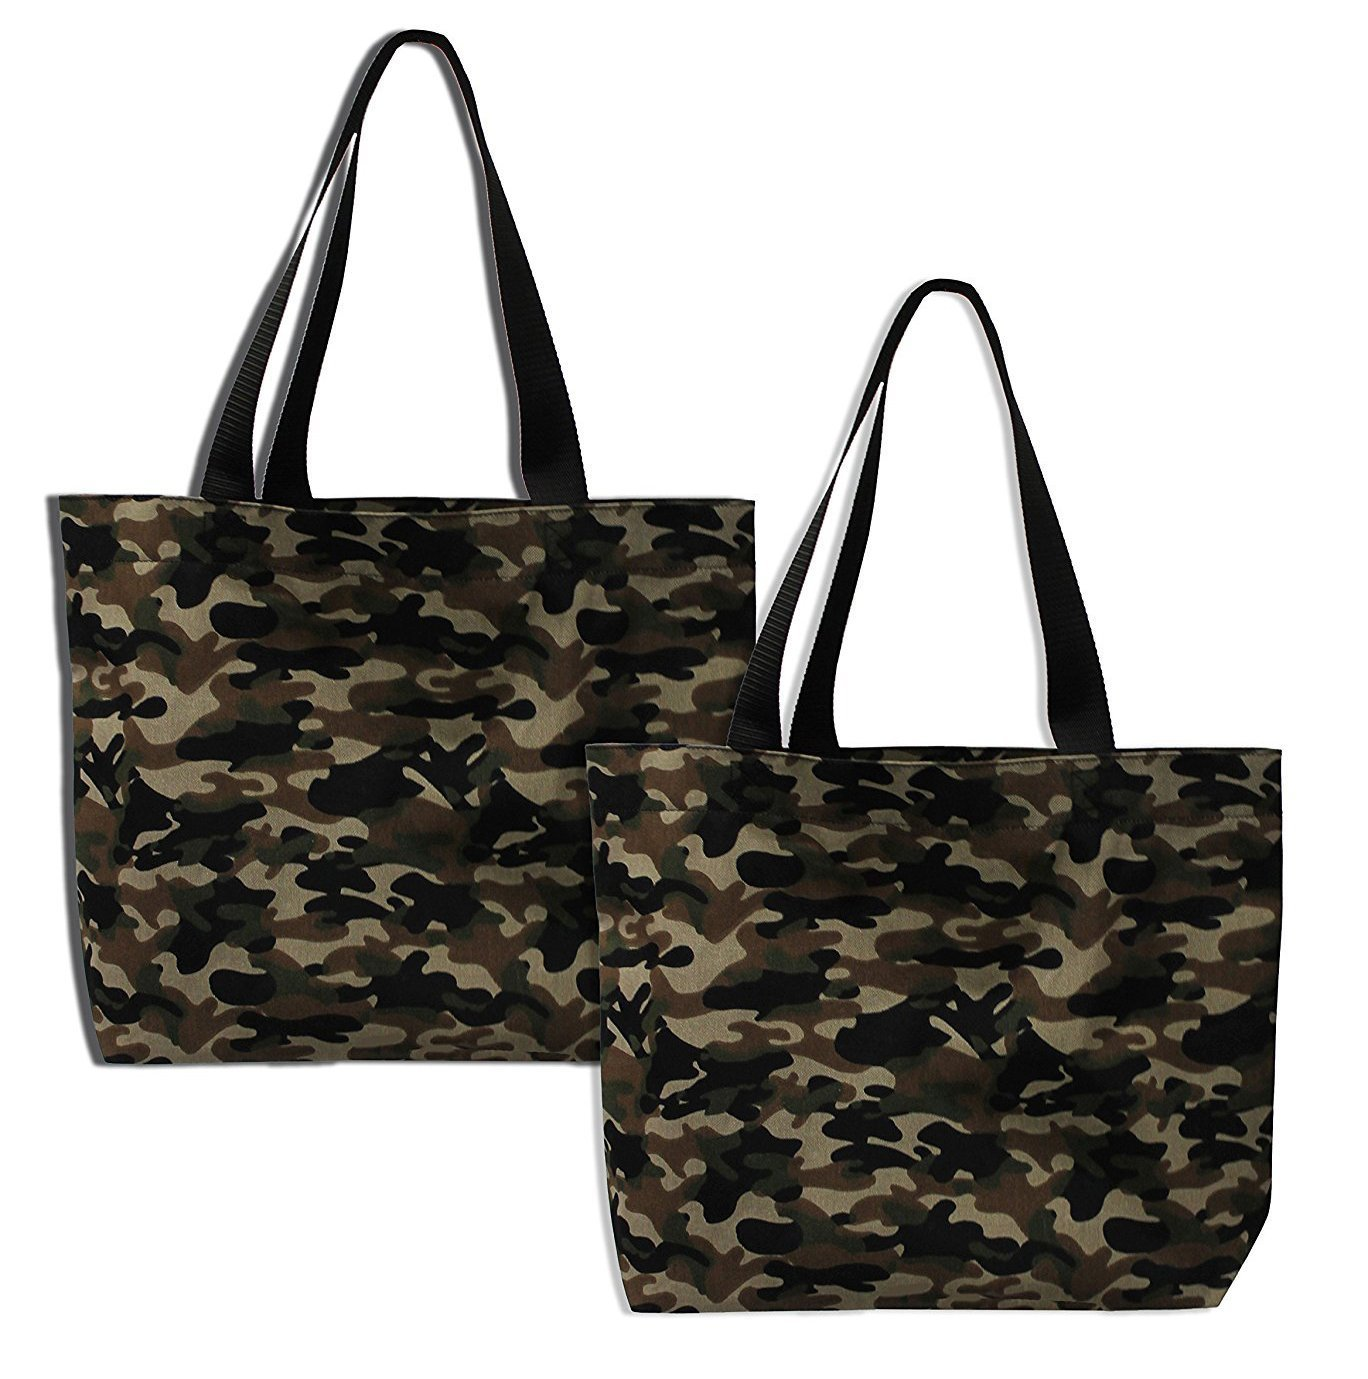 Earthwise Camouflage Camo Bag Tote Fashion Shopping Everyday Reusable Grocery Bag PROUDLY MADE IN THE USA (Set of 2)